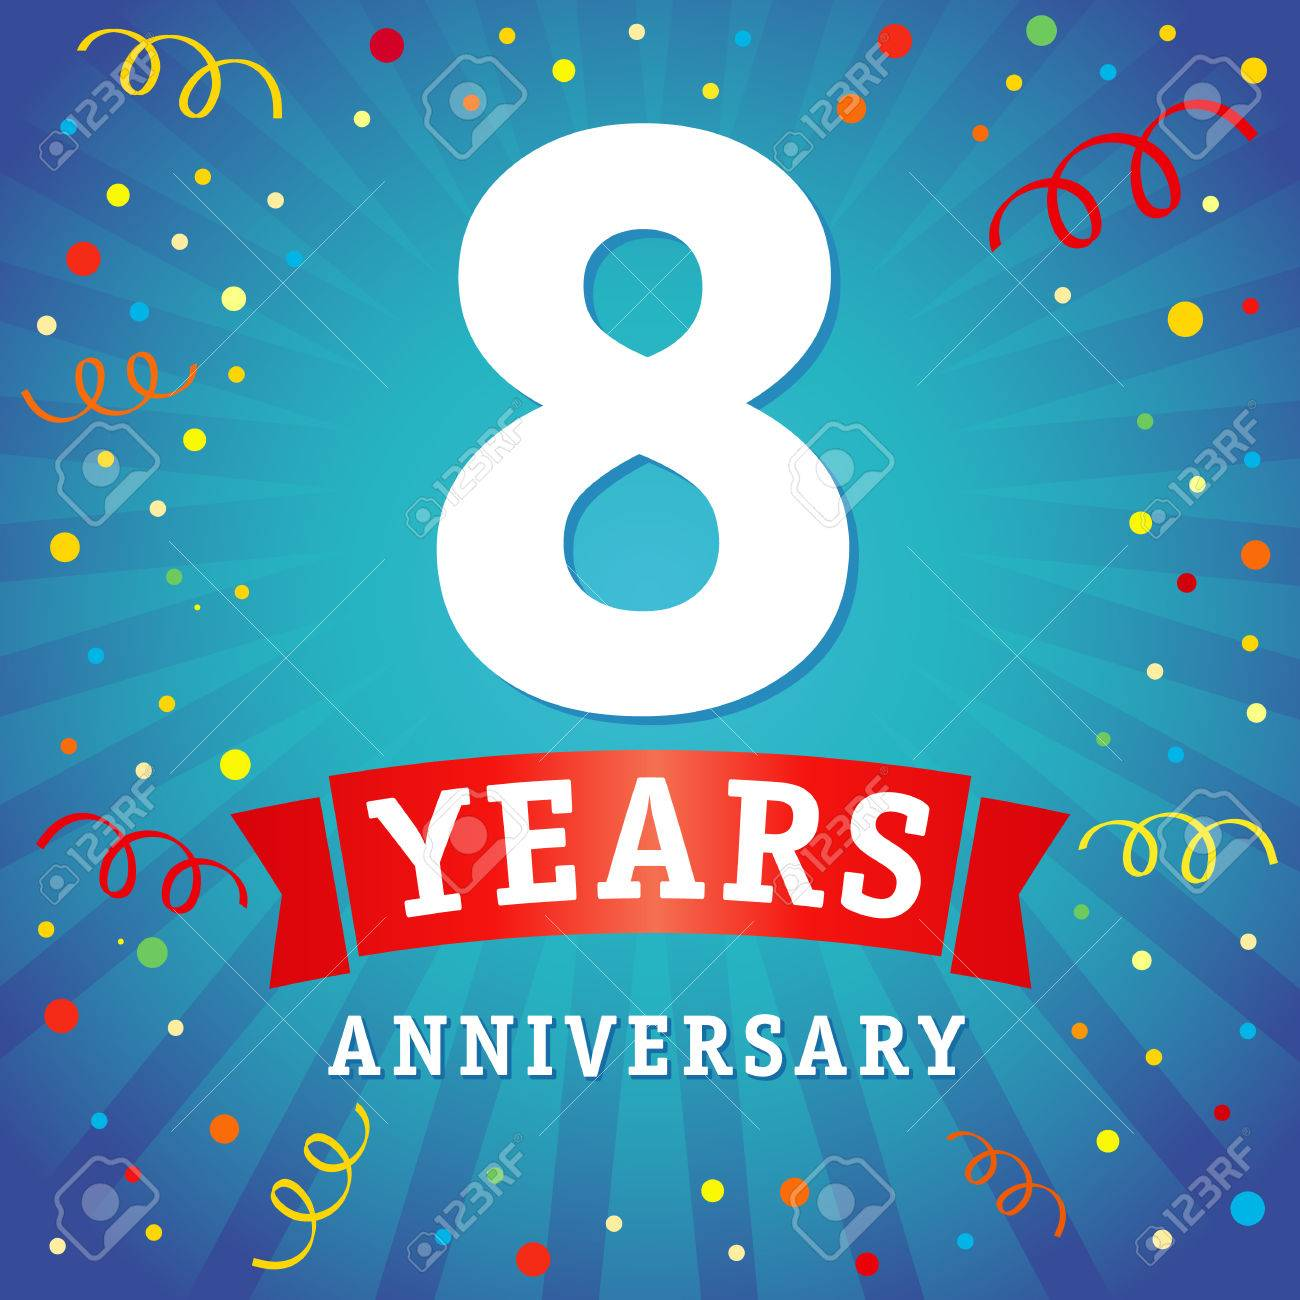 8 Years Anniversary Logo Celebration Card 8th Years Anniversary Royalty Free Cliparts Vectors And Stock Illustration Image 82411184